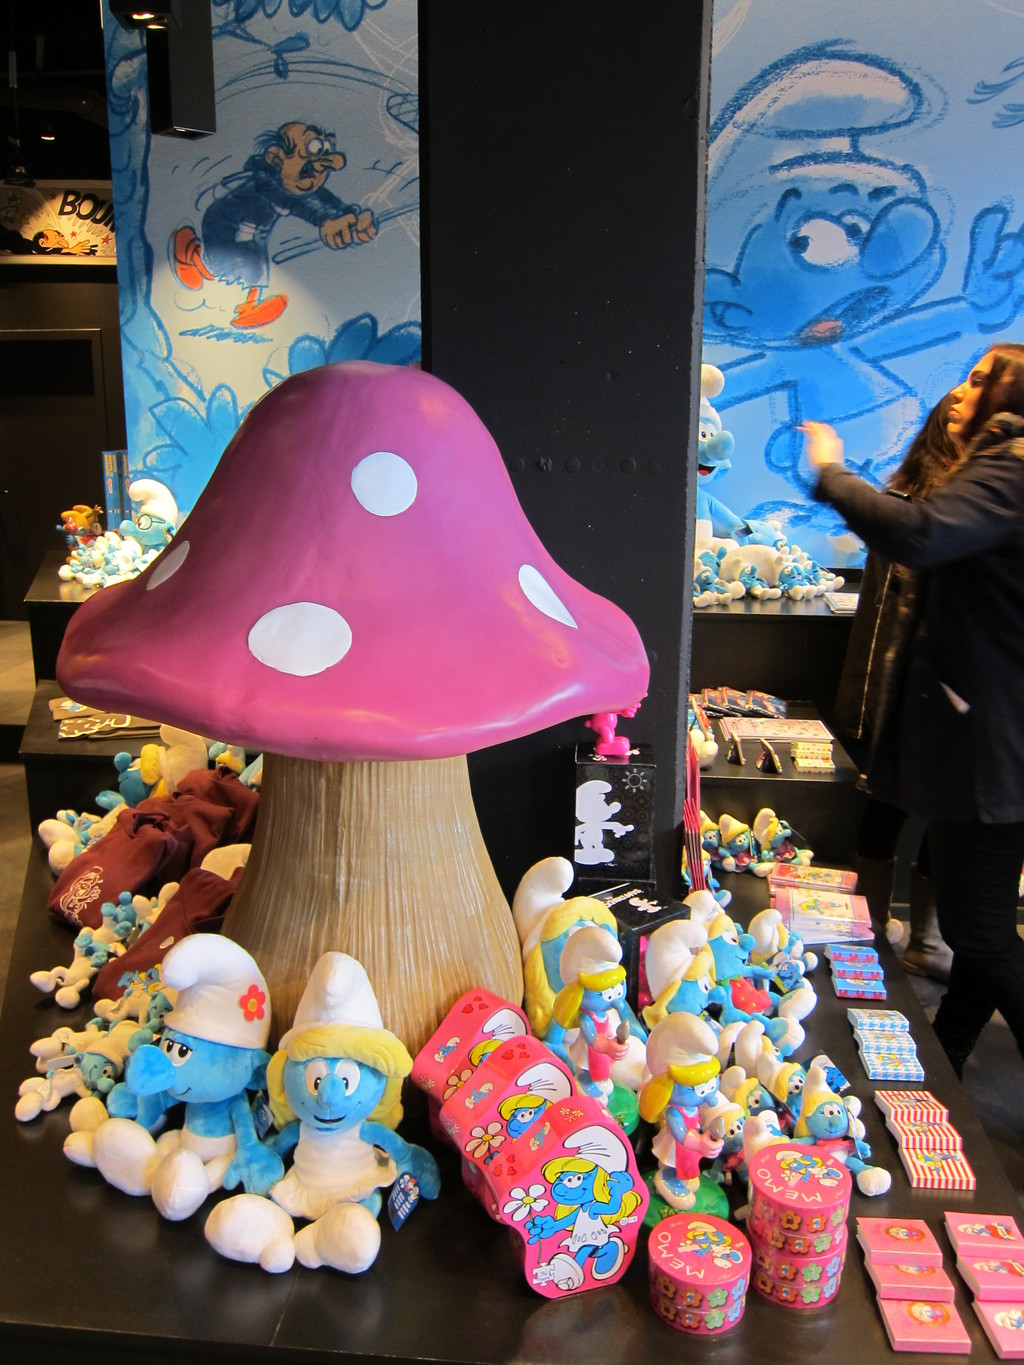 Delve deep into the blue world of the 'Smurfs'